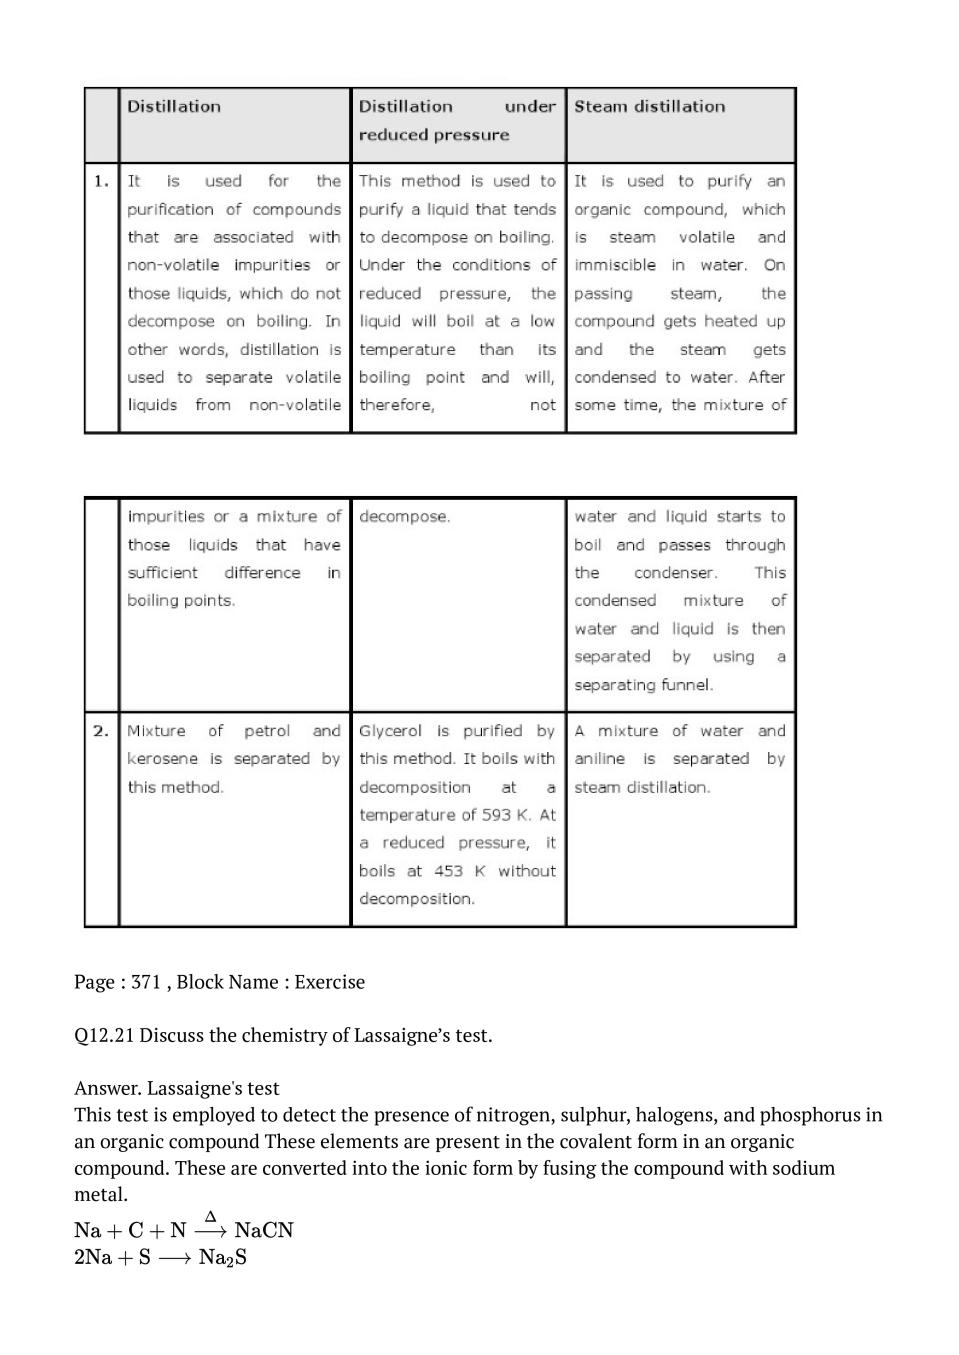 NCERT Solutions for Class 11 Chemistry Chapter 12 Organic